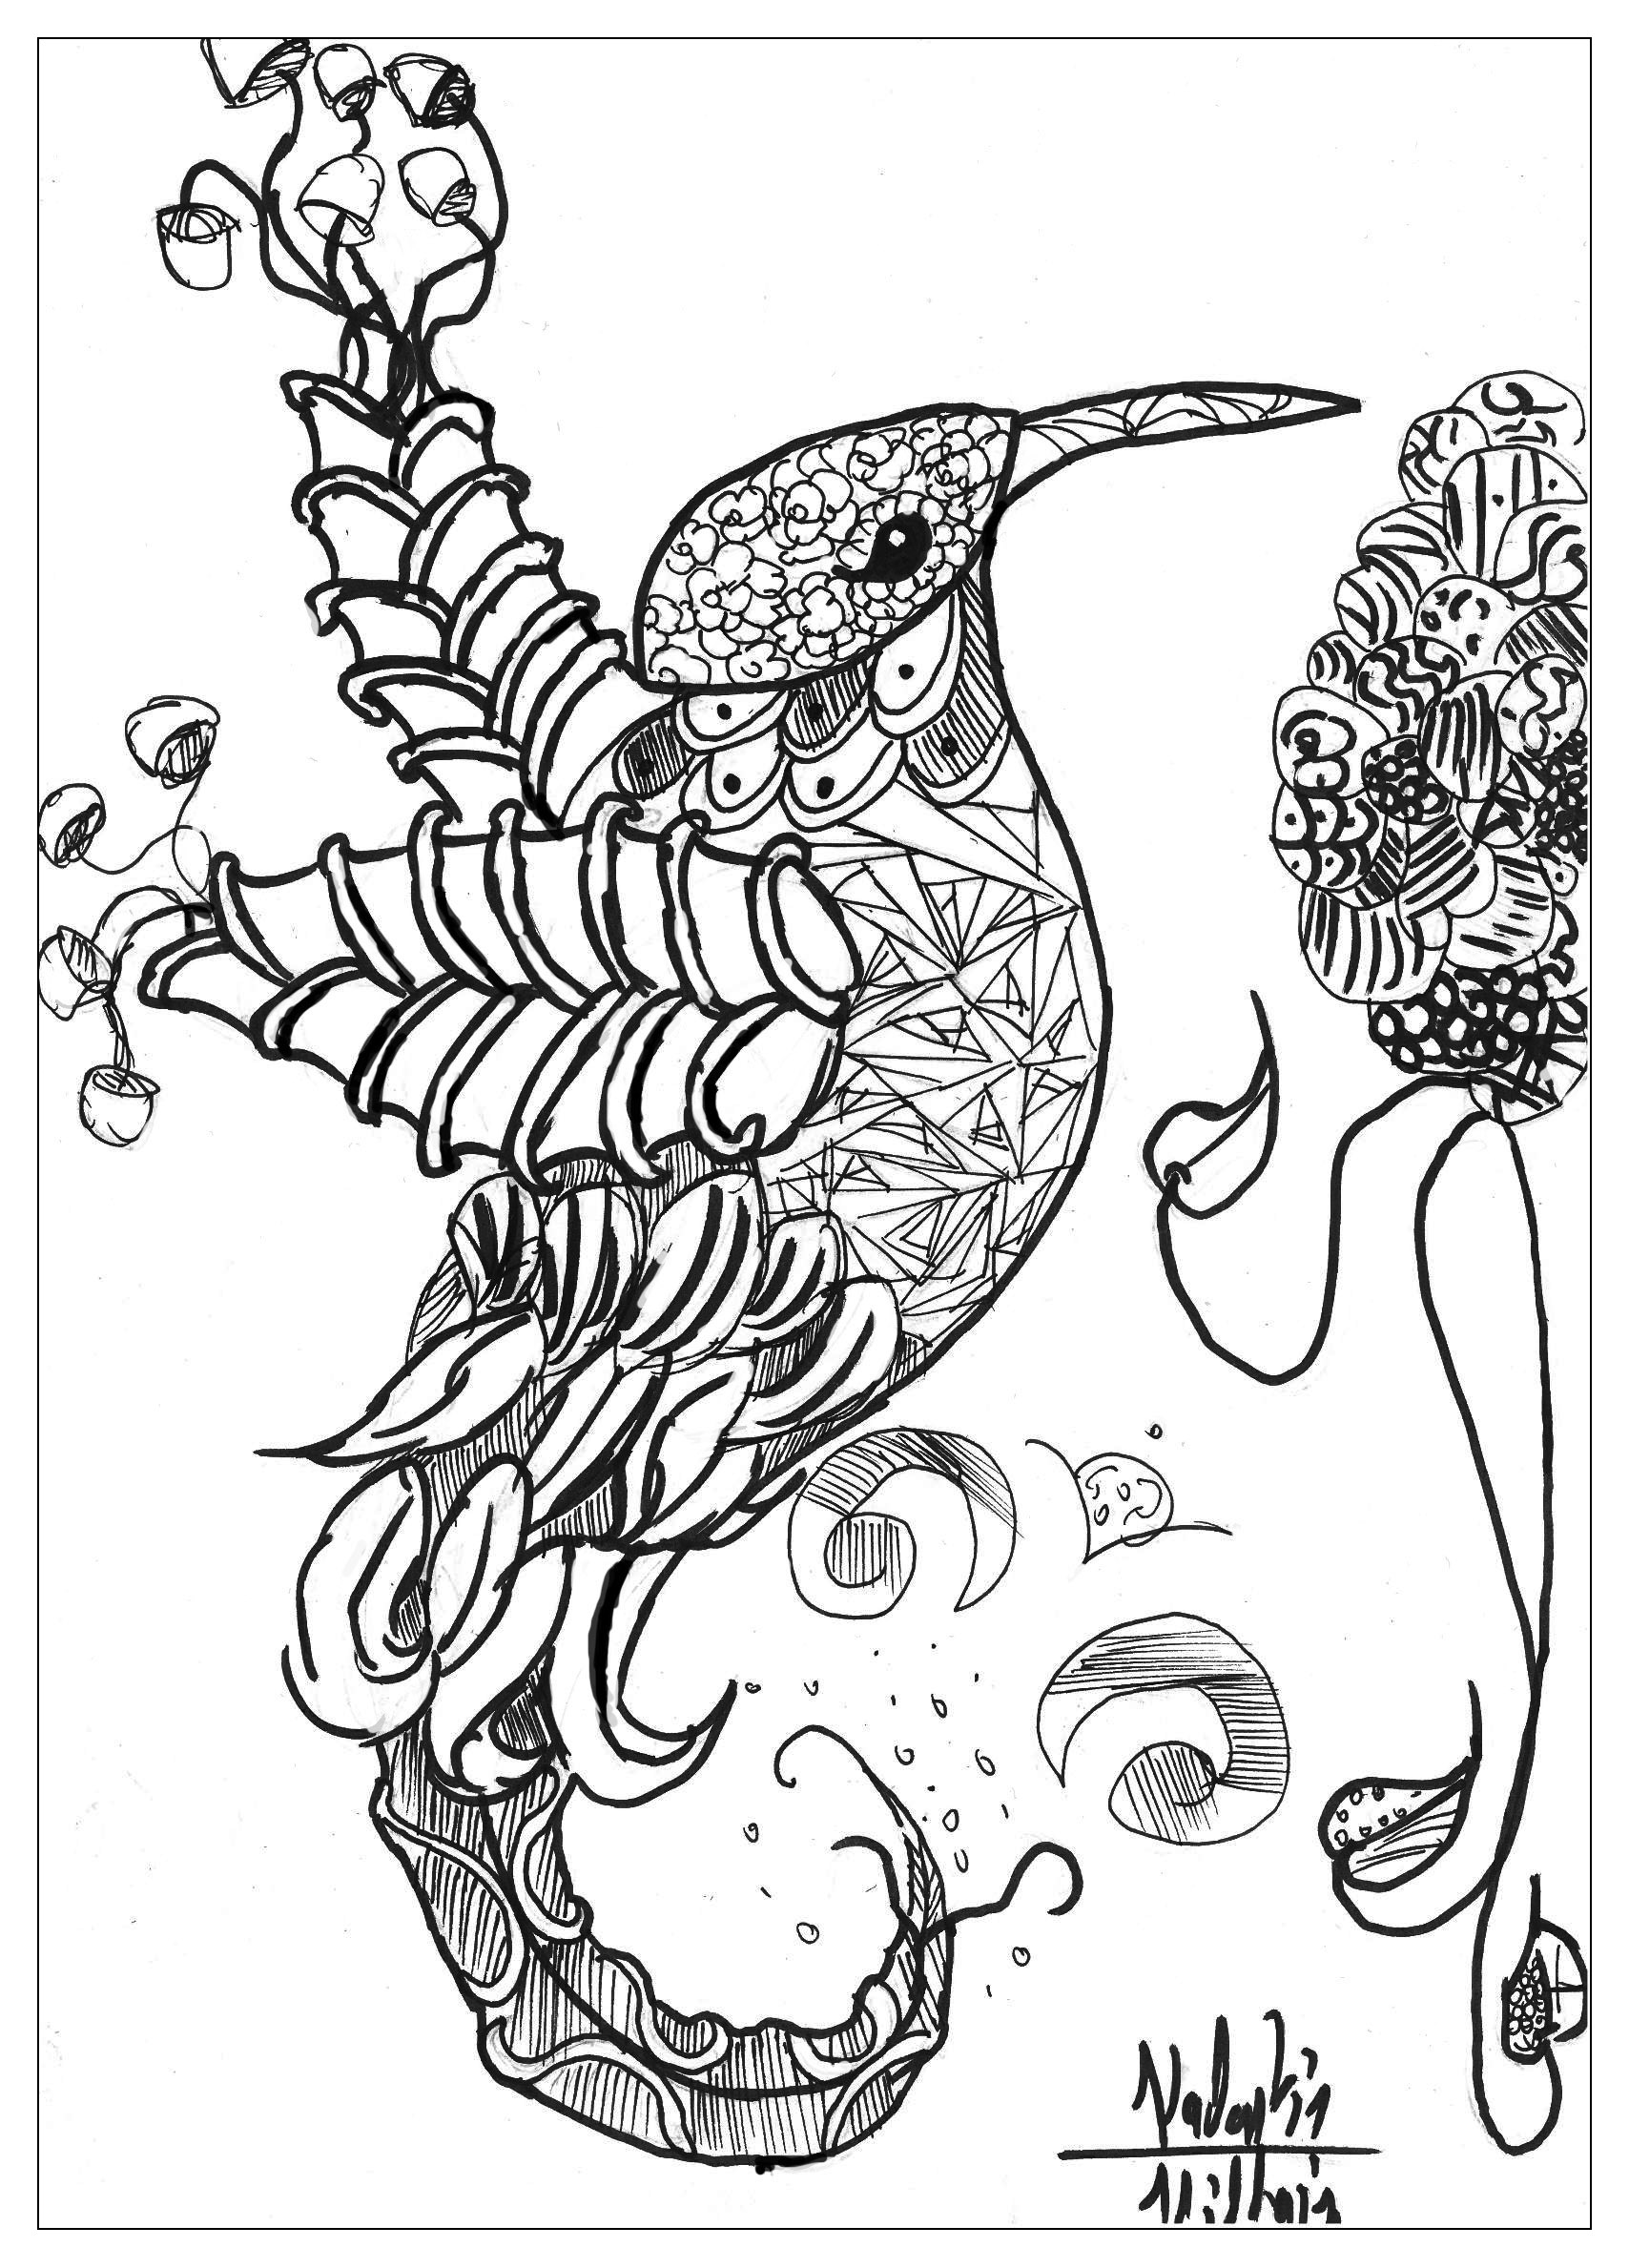 bird coloring pages for adults animals bird valentin birds adult coloring pages pages bird for coloring adults